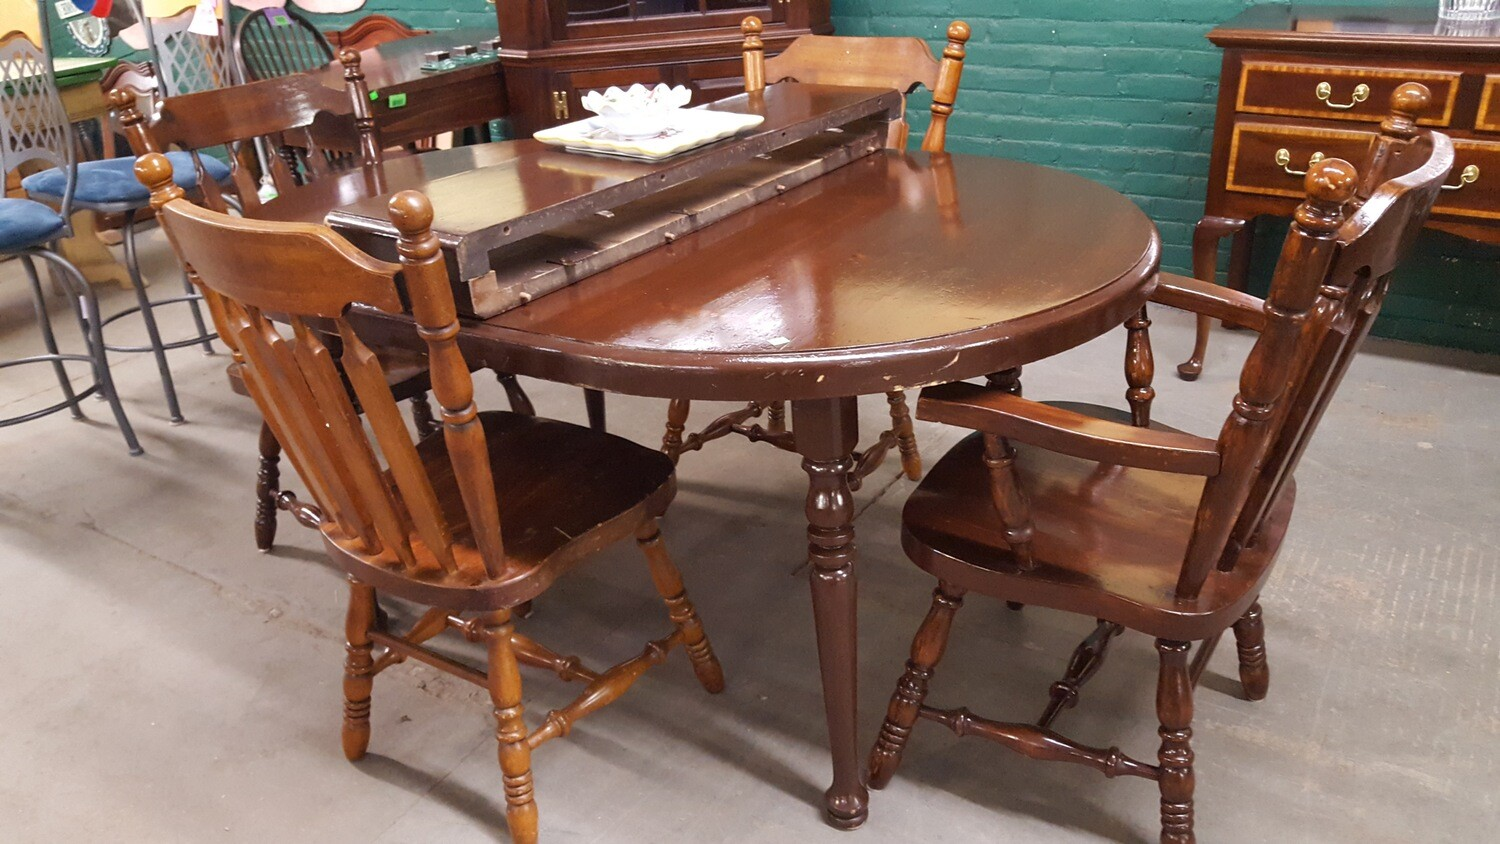 Pine Table 4 chairs (CL)